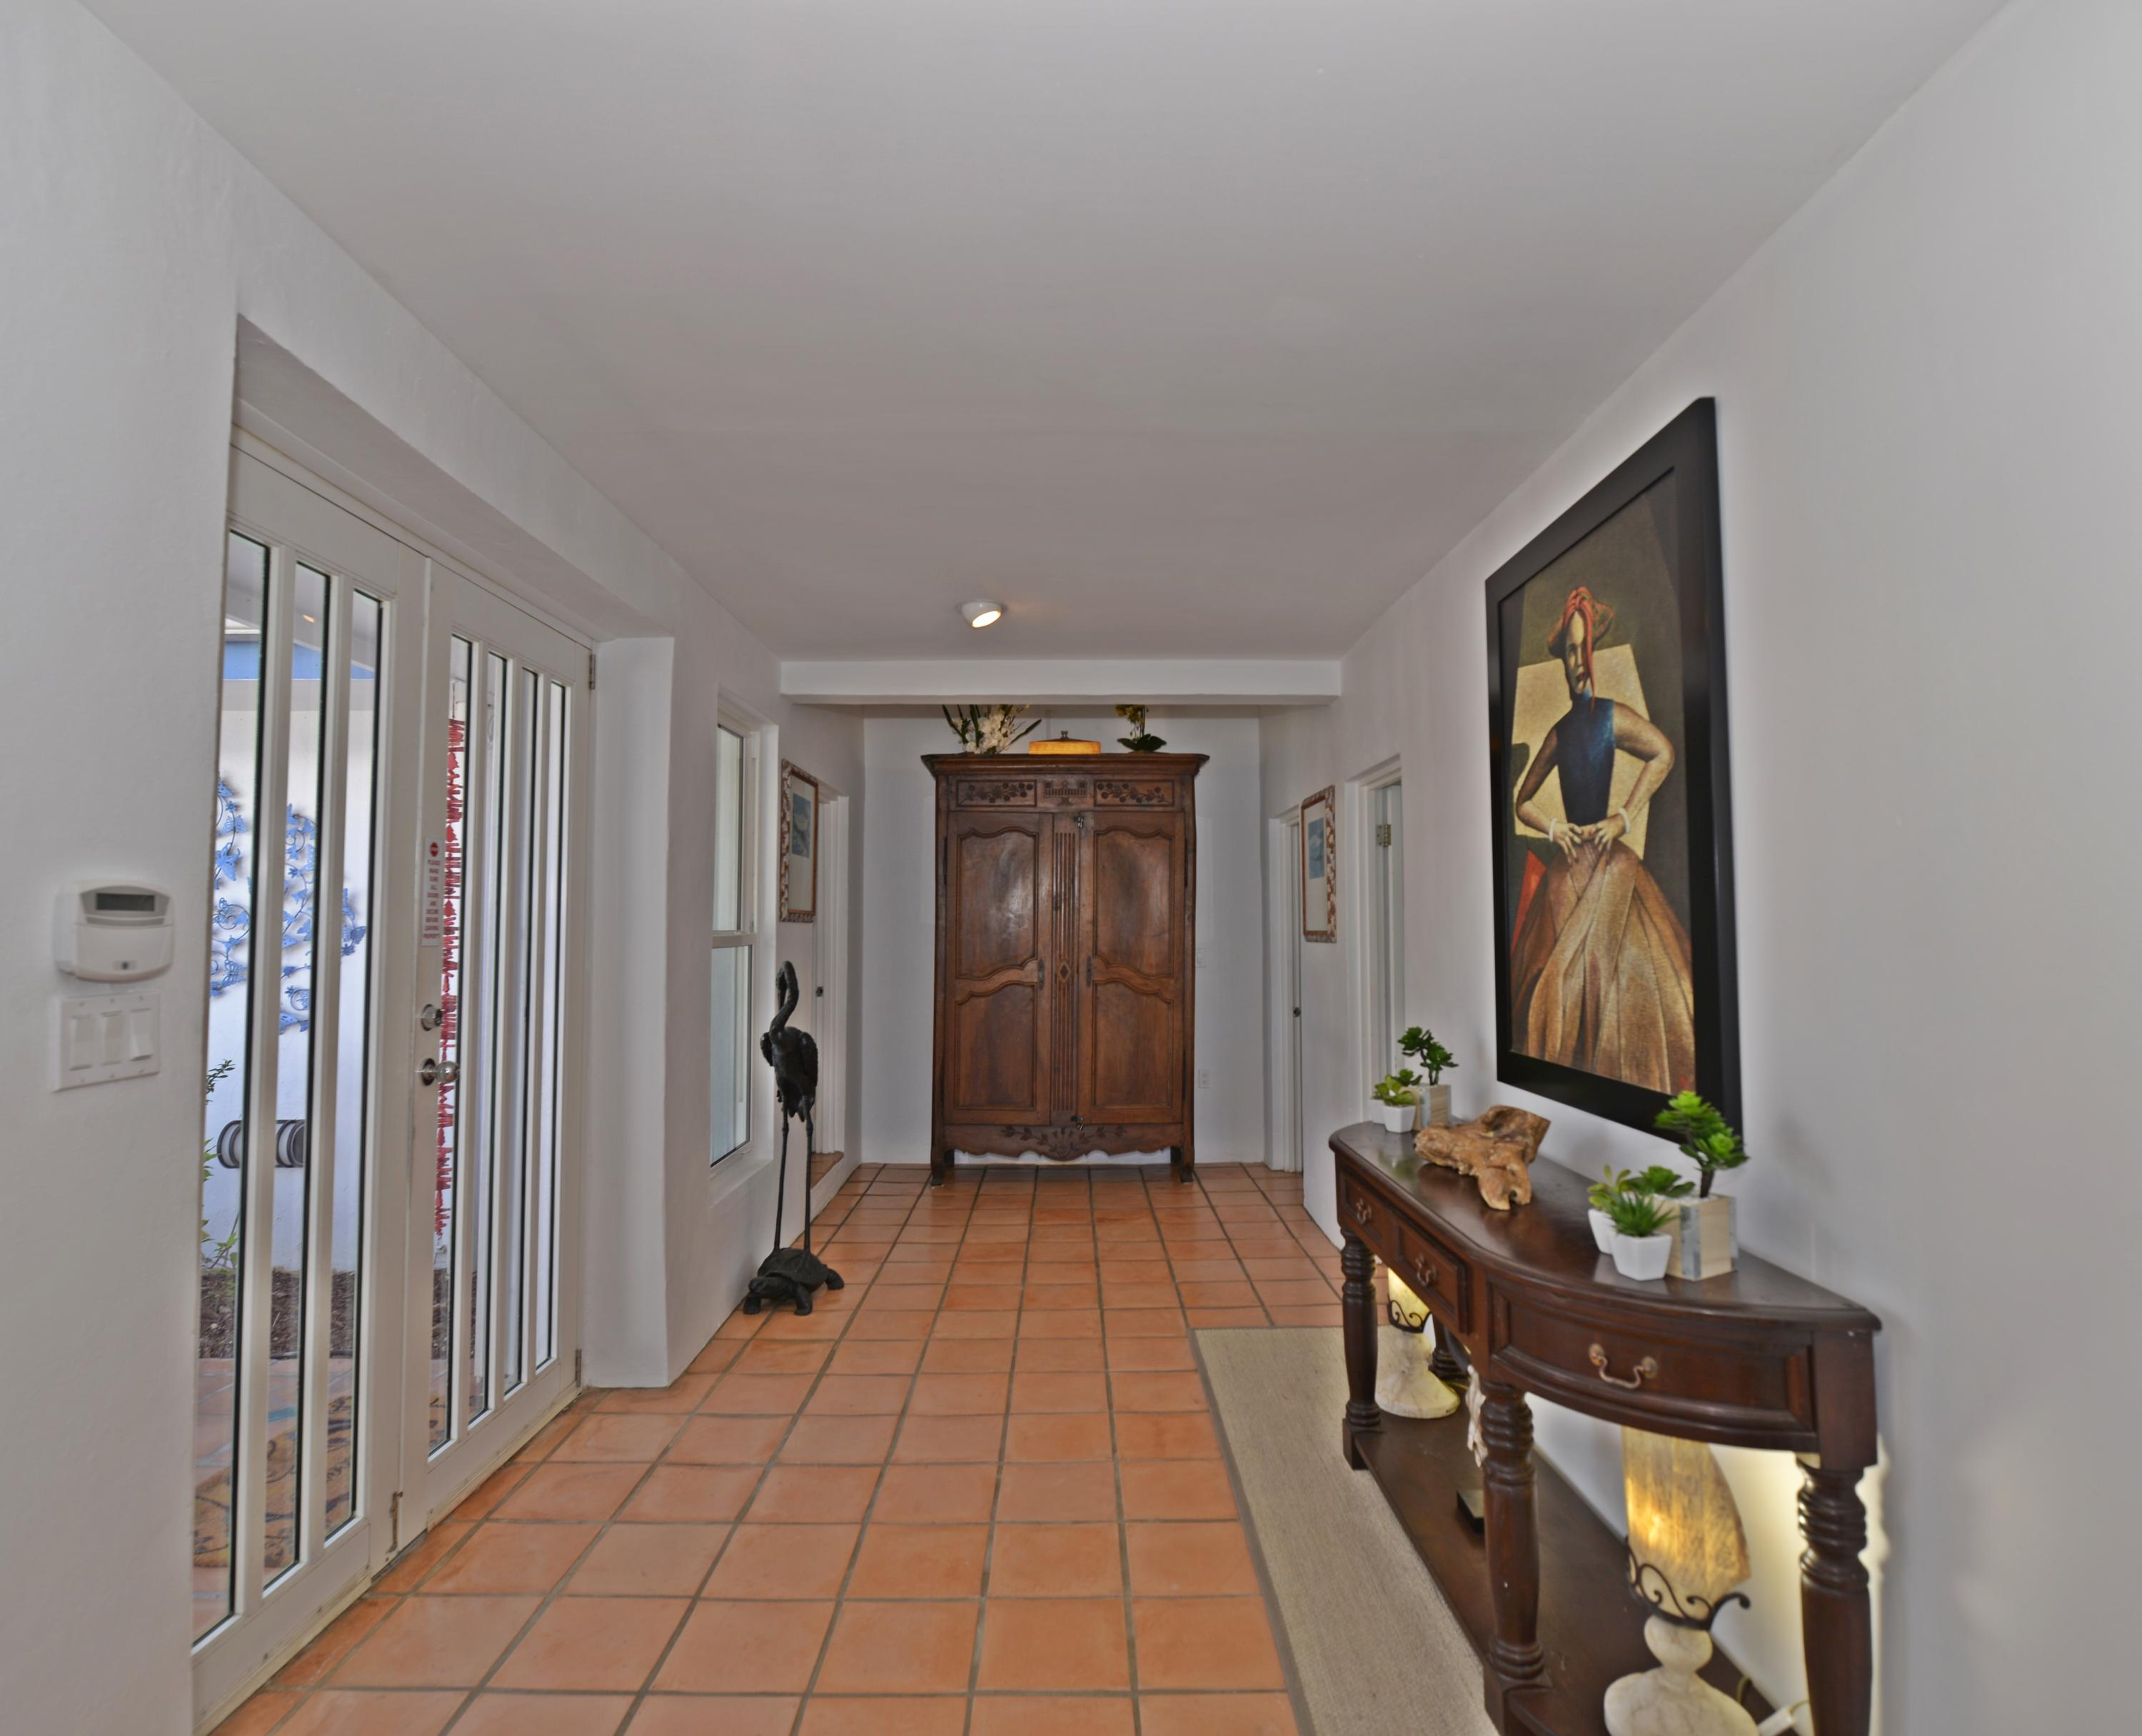 Entrance hallway looking towards bedroom